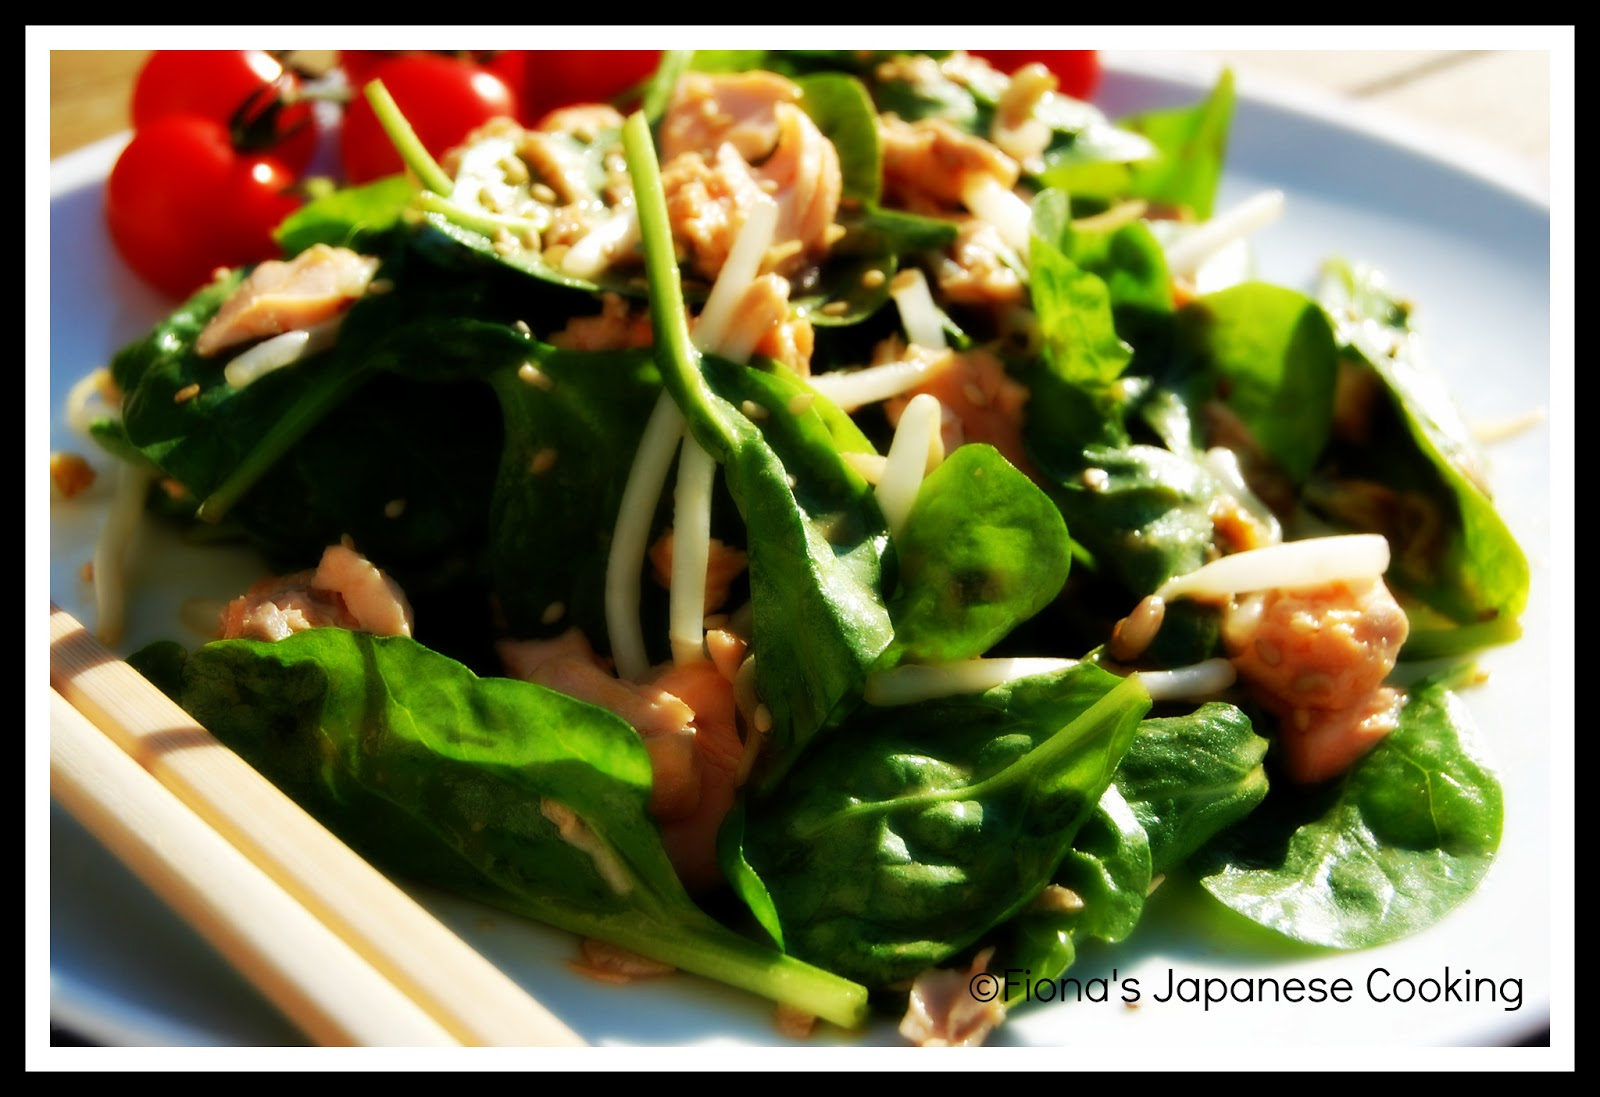 Fiona's Japanese Cooking: JAPANESE MISO SALMON SALAD RECIPE